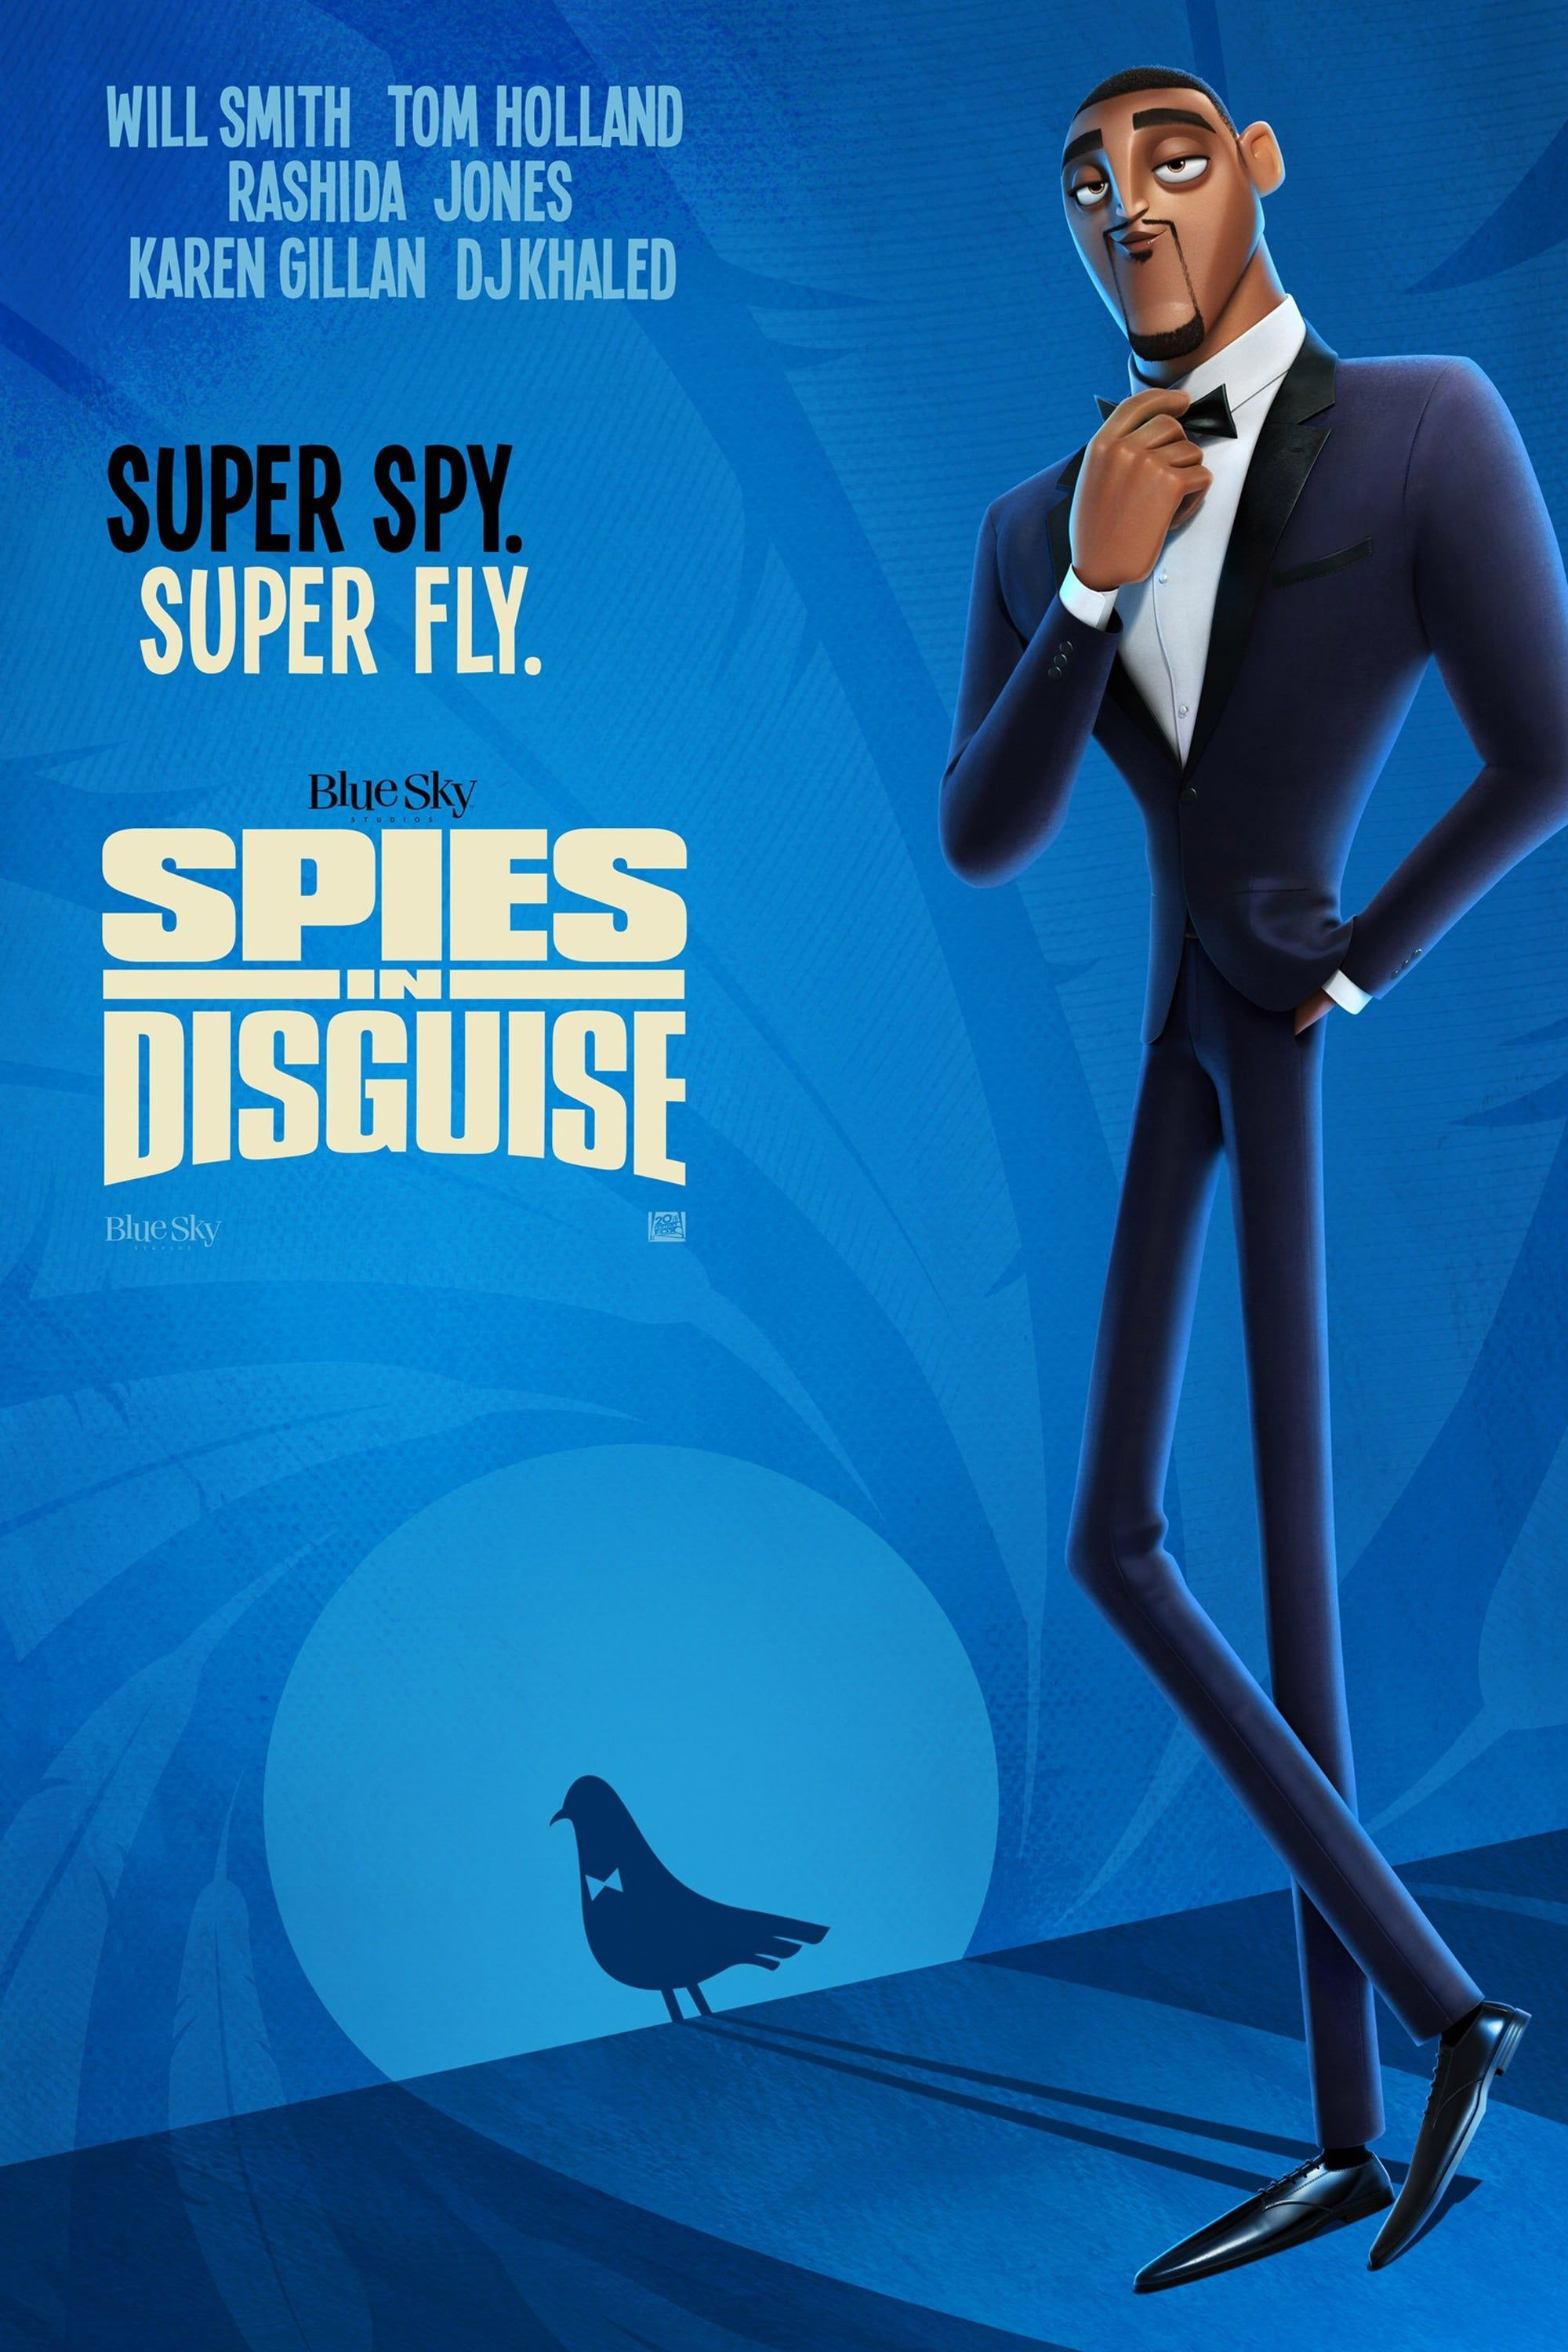 Spies In Disguise 2019 Full Movie Free Online Sub Spiesindisguise Fullmovie Fullmovieonline Streamingonline Pinterestm Movies 2019 Full Movies Disguise